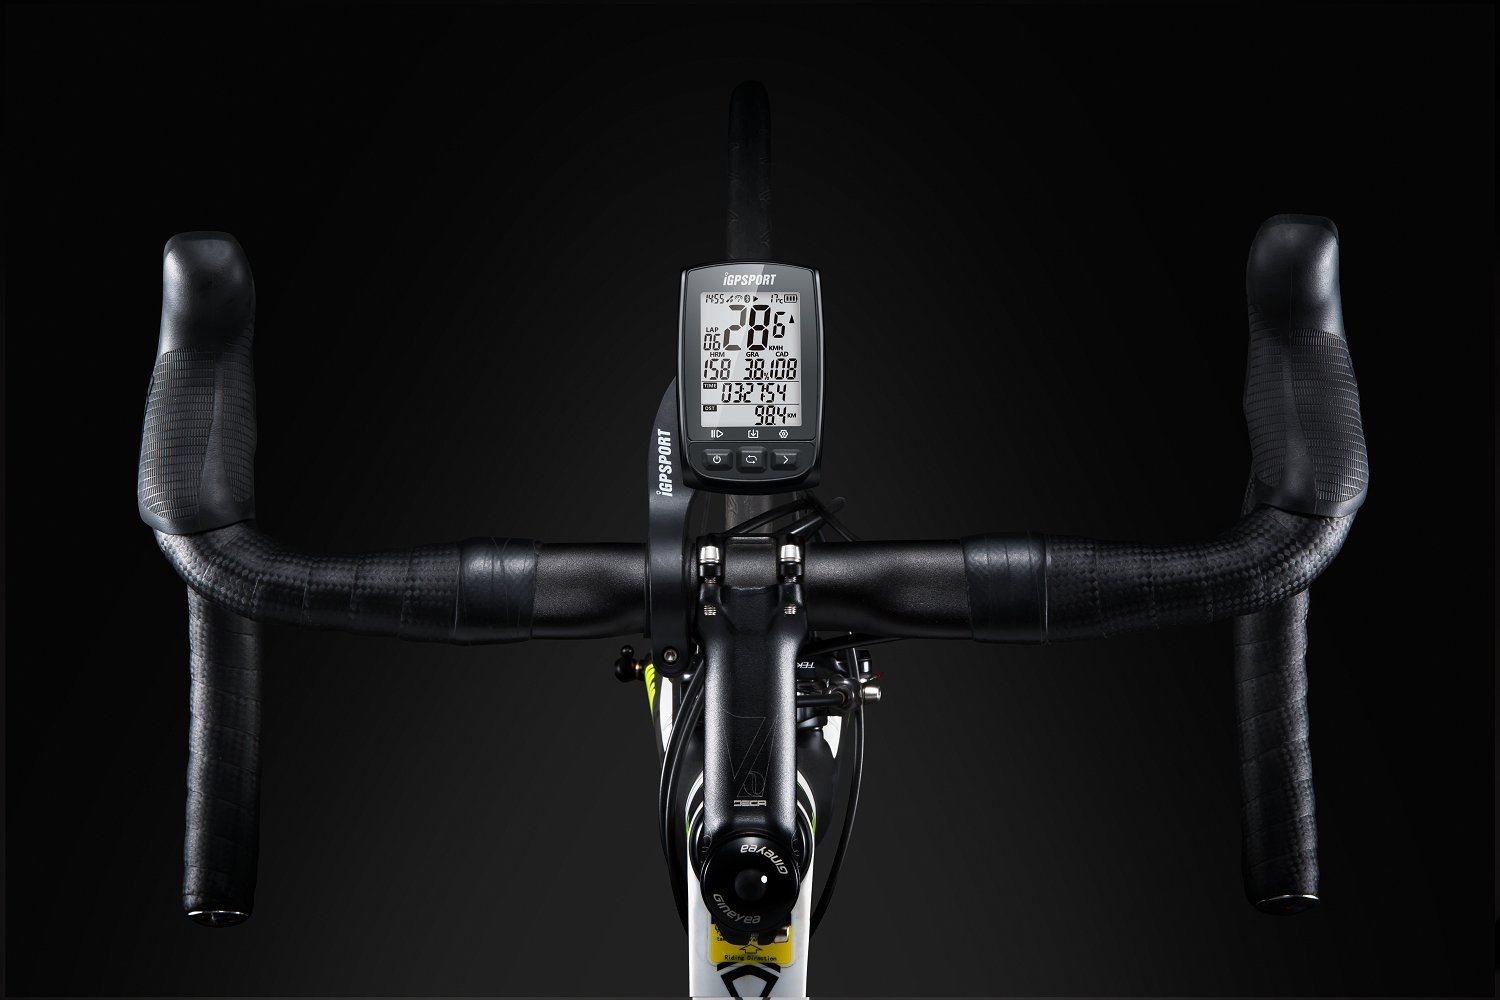 61gz2W8ZbDL - IGPSPORT GPS Bike Computer iGS50E Wireless Cycle Computer Waterproof Compatible Speed Cadence Heart rate Sensor (Not…